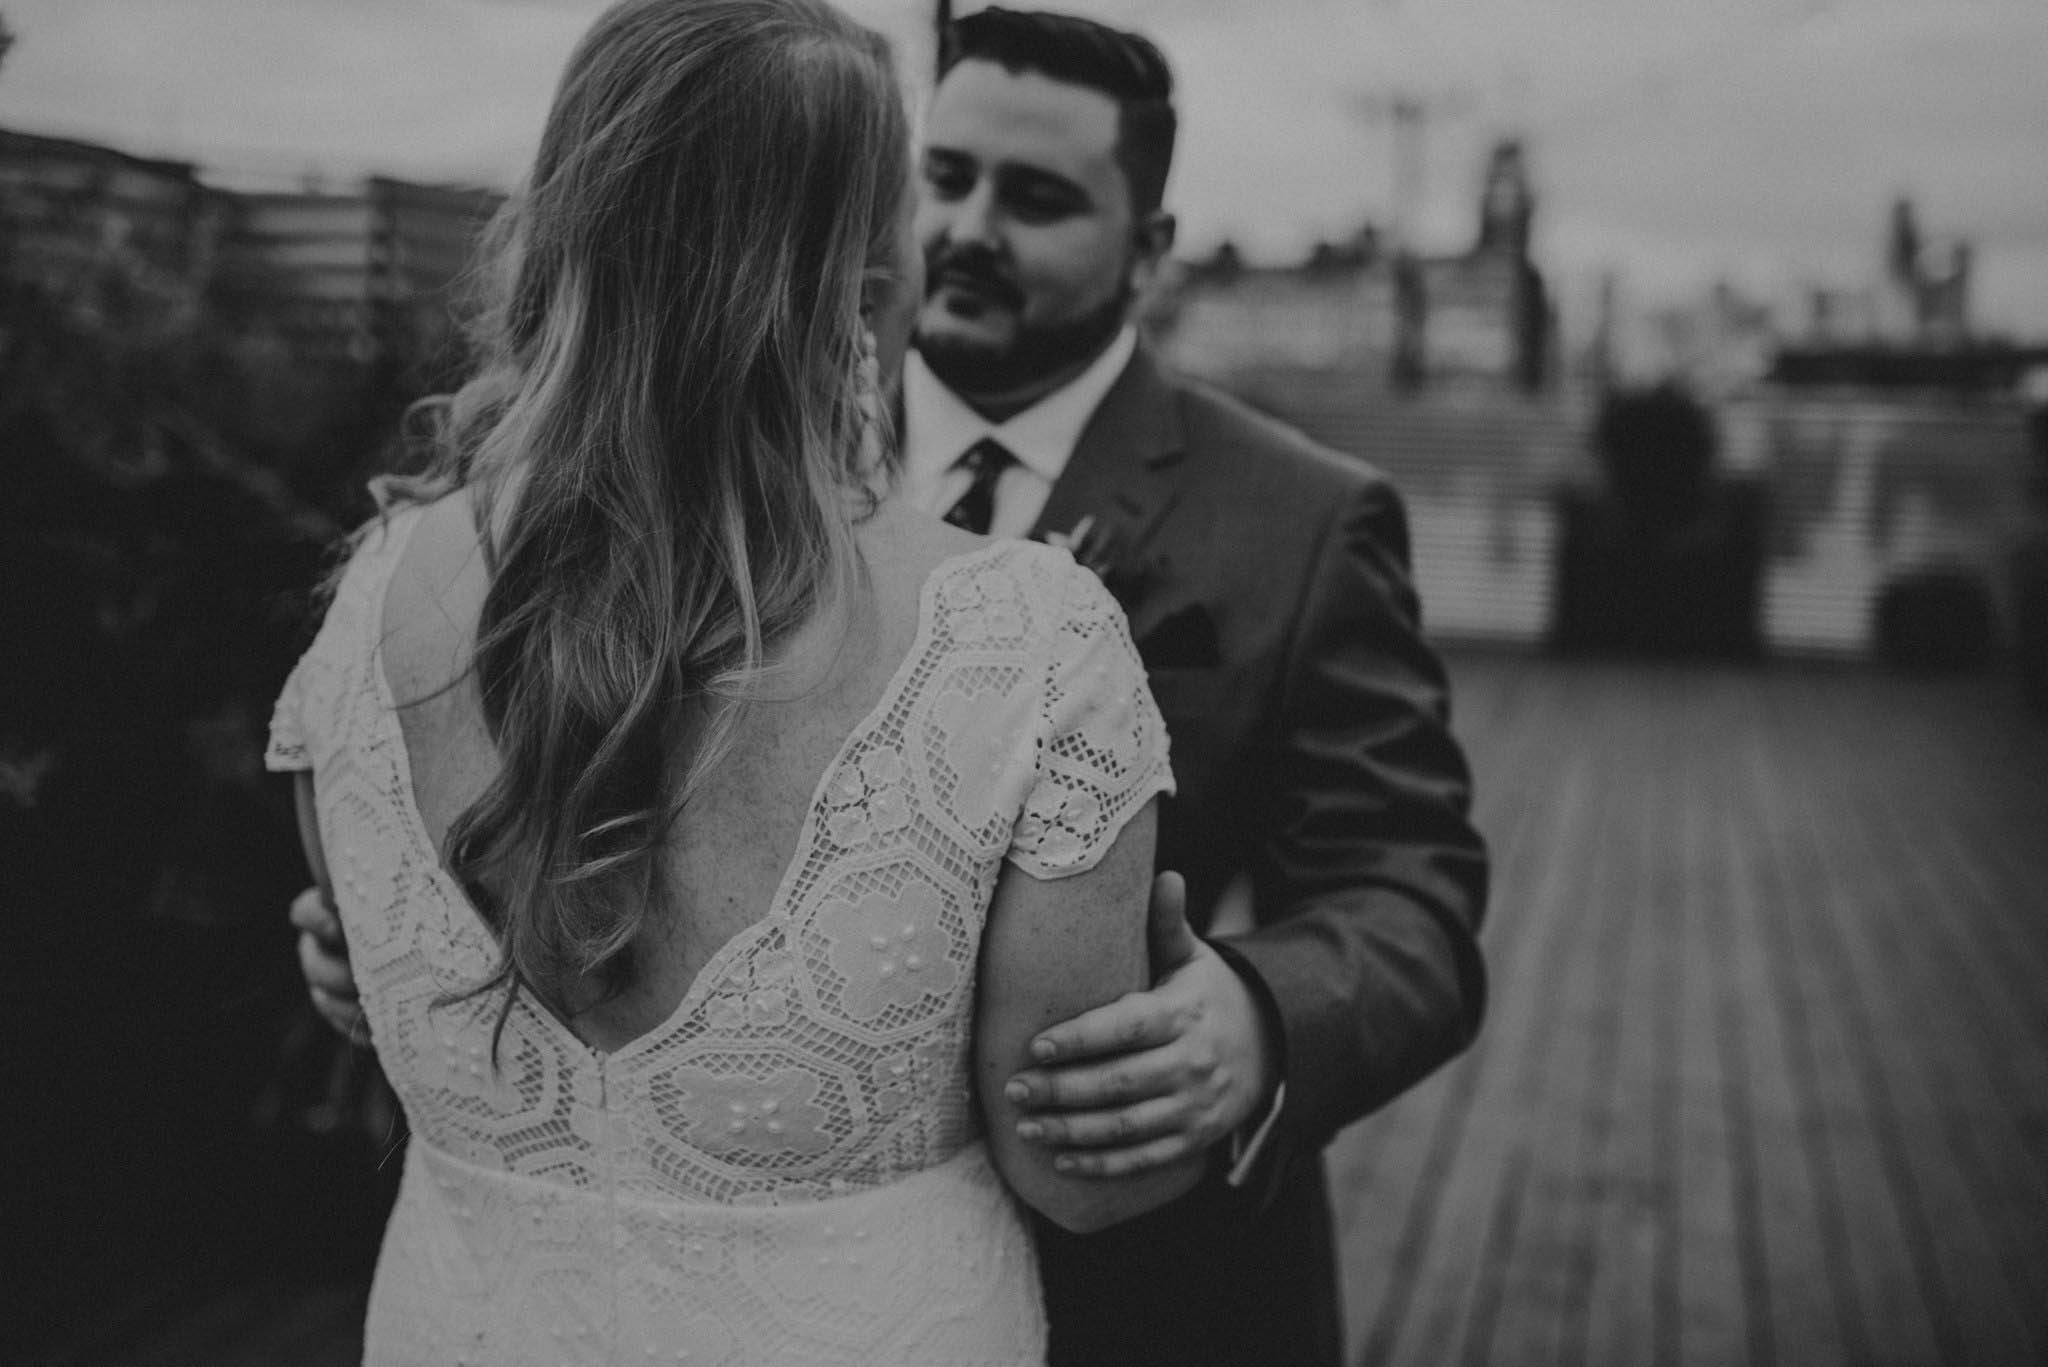 gwen-andrew-within-sodo-downtown-seattle-wedding-photographer-winter-31.jpg